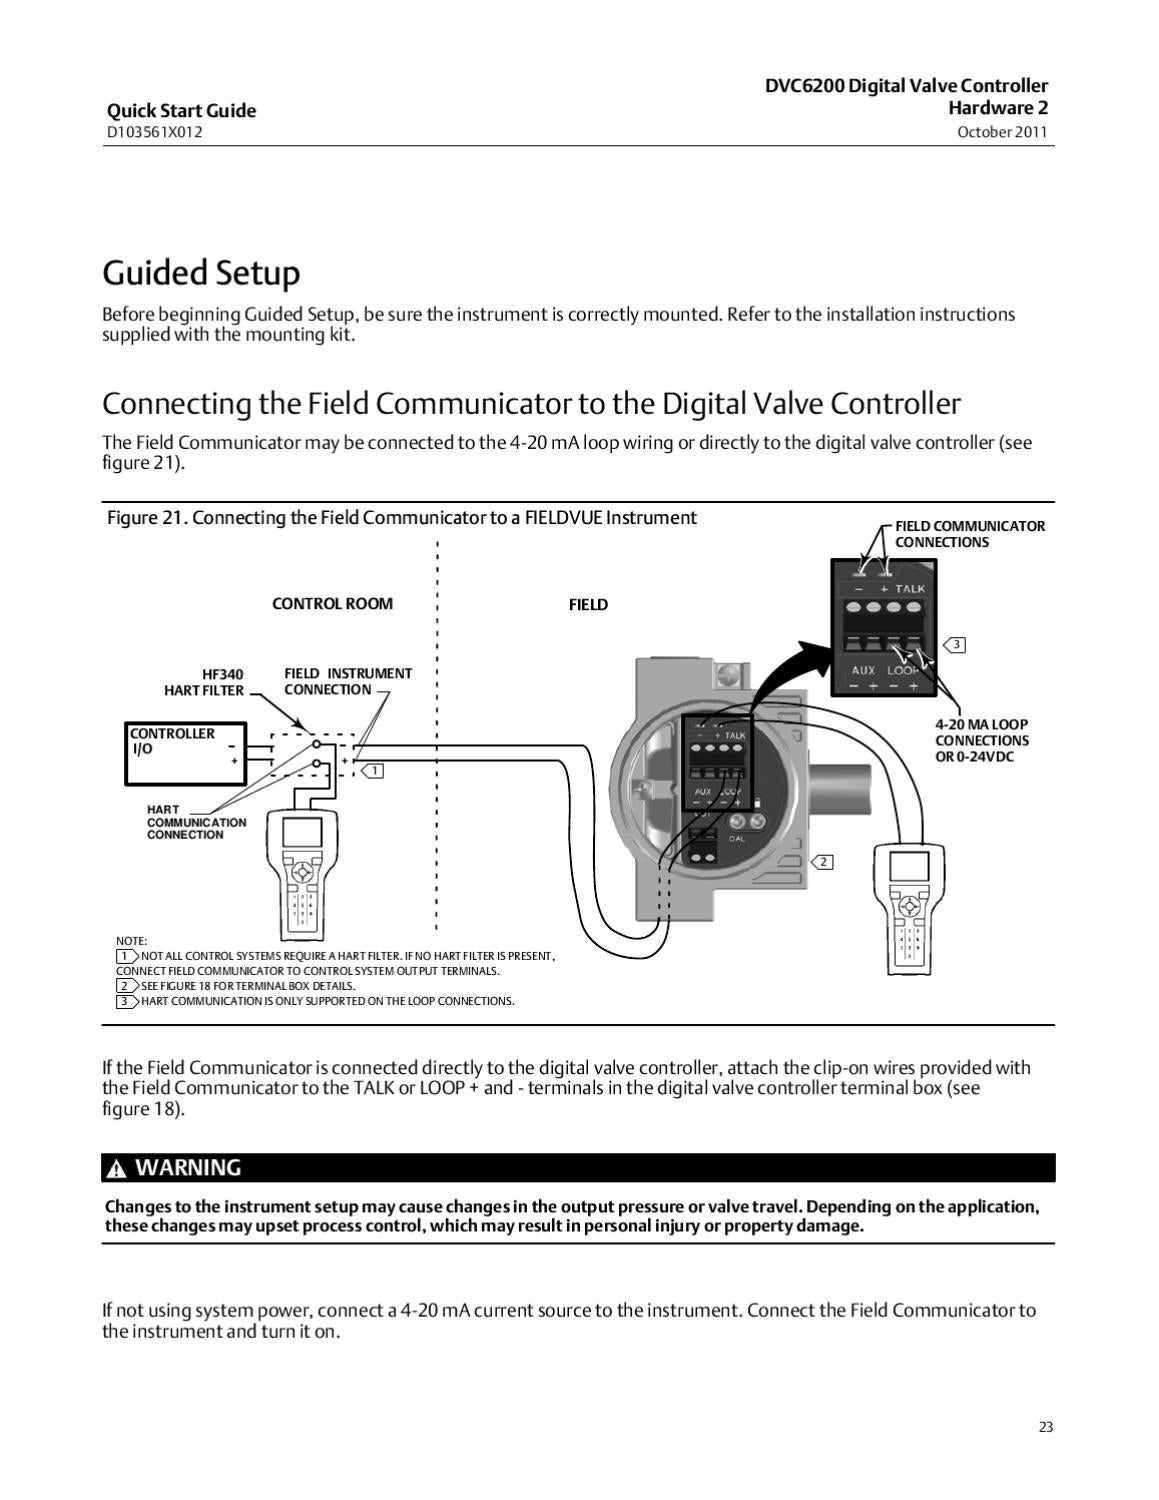 Dvc6200 Quick Start Guide Elctrncs Hrdwre Rev 2 Oct 2011 By Rmc Process Controls  U0026 Filtration